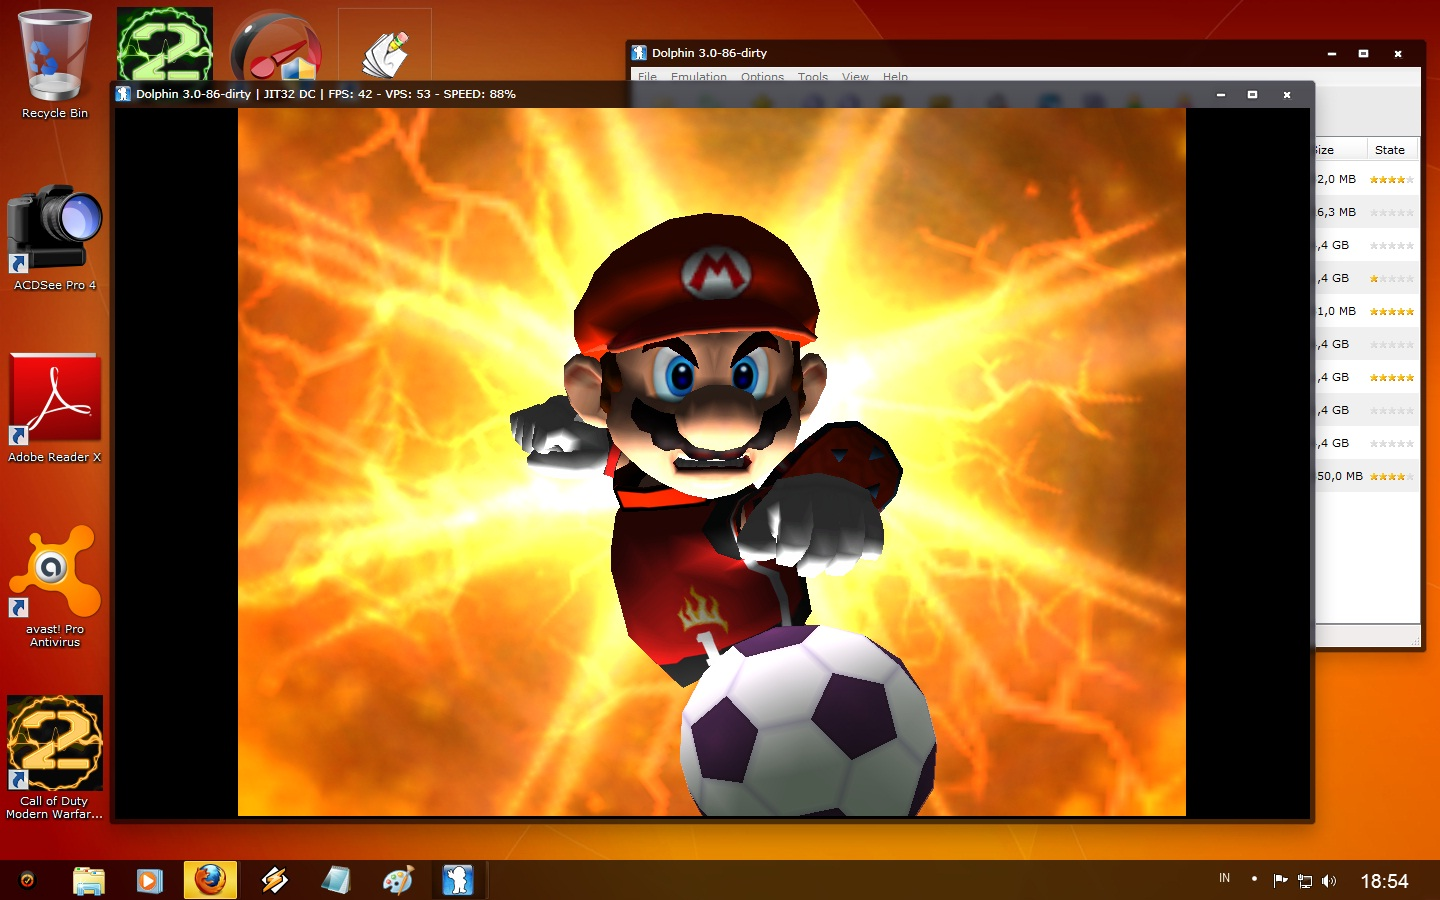 Shaolin Soccer Game PC http://devyblock.blogspot.com/2011/09/super-mario-strikers-proper-pc-game.html